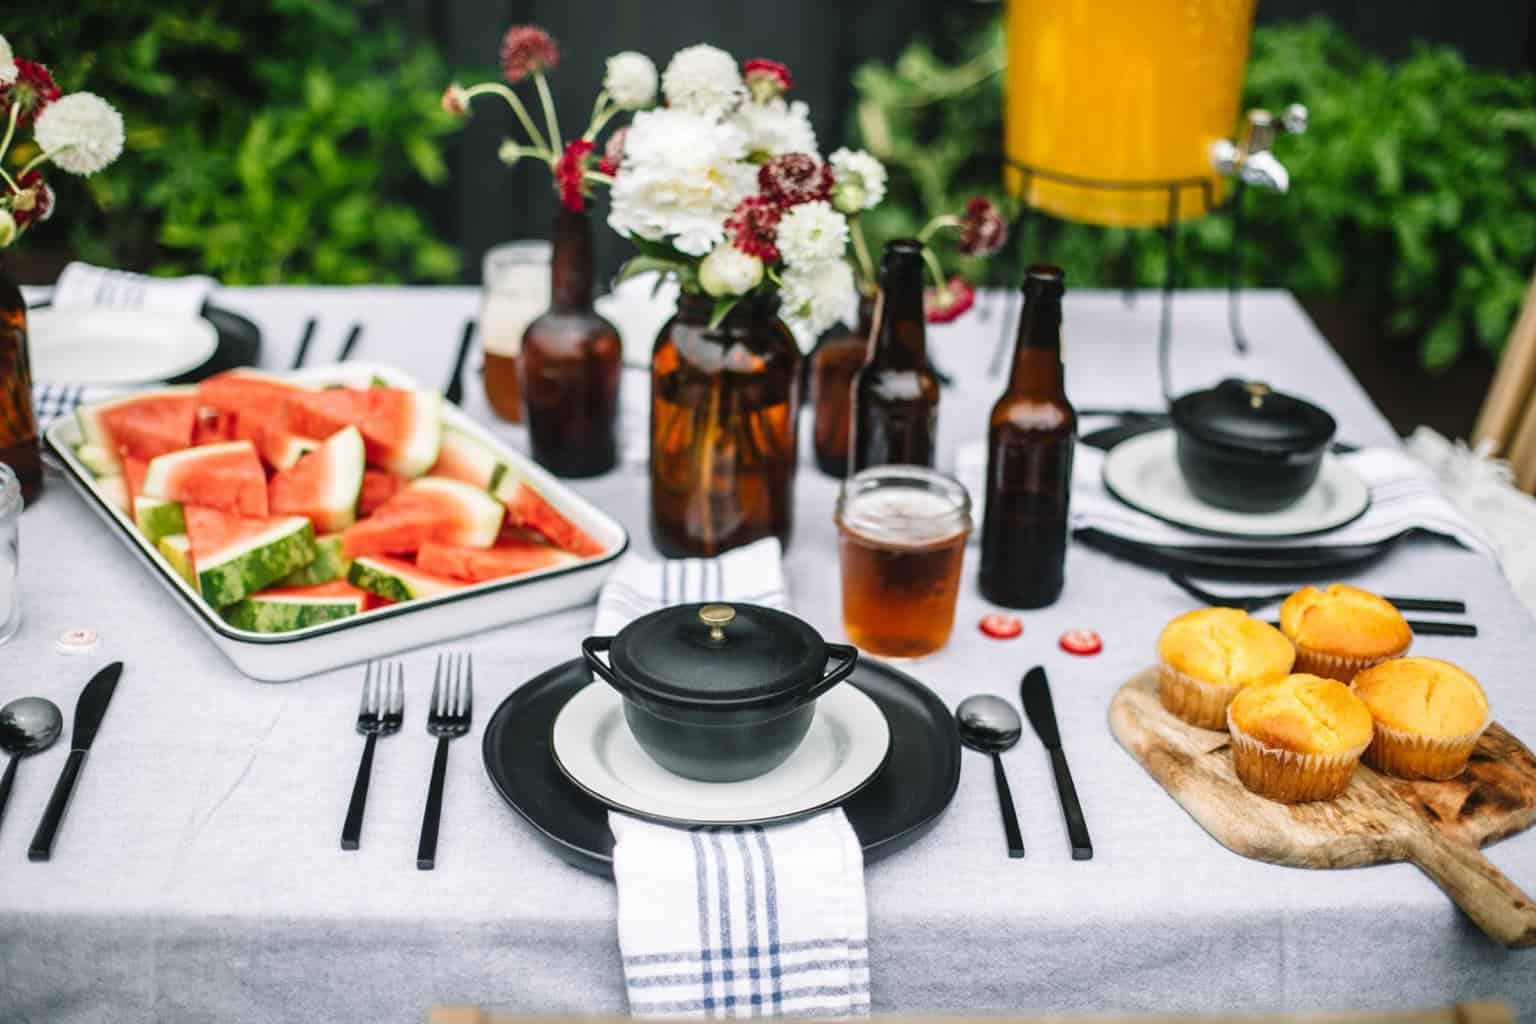 Fathers day table set up with a platter of watermelon, cornbread and beer bottles.